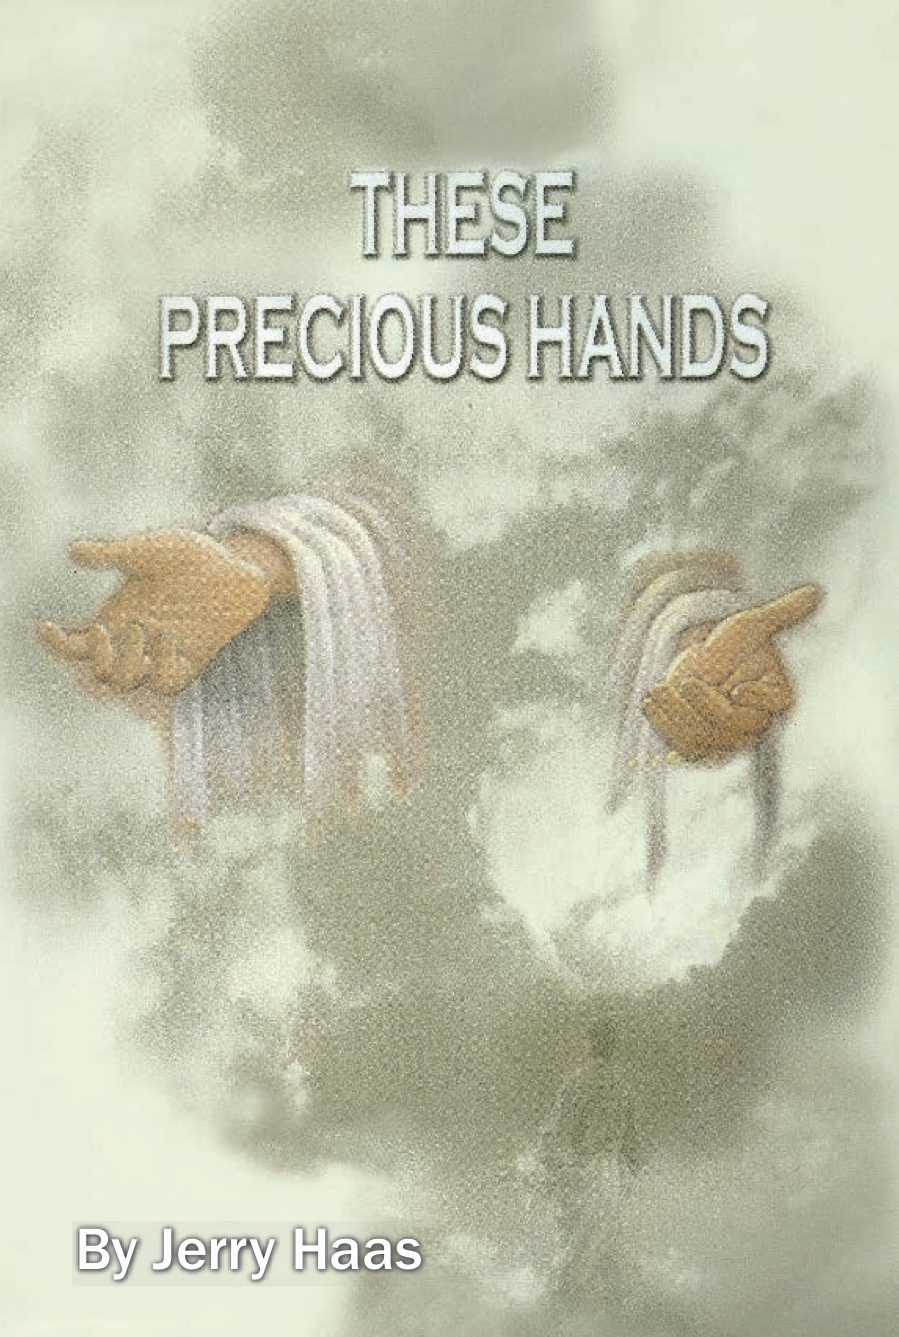 These Precious Hands Book Jerry Haas